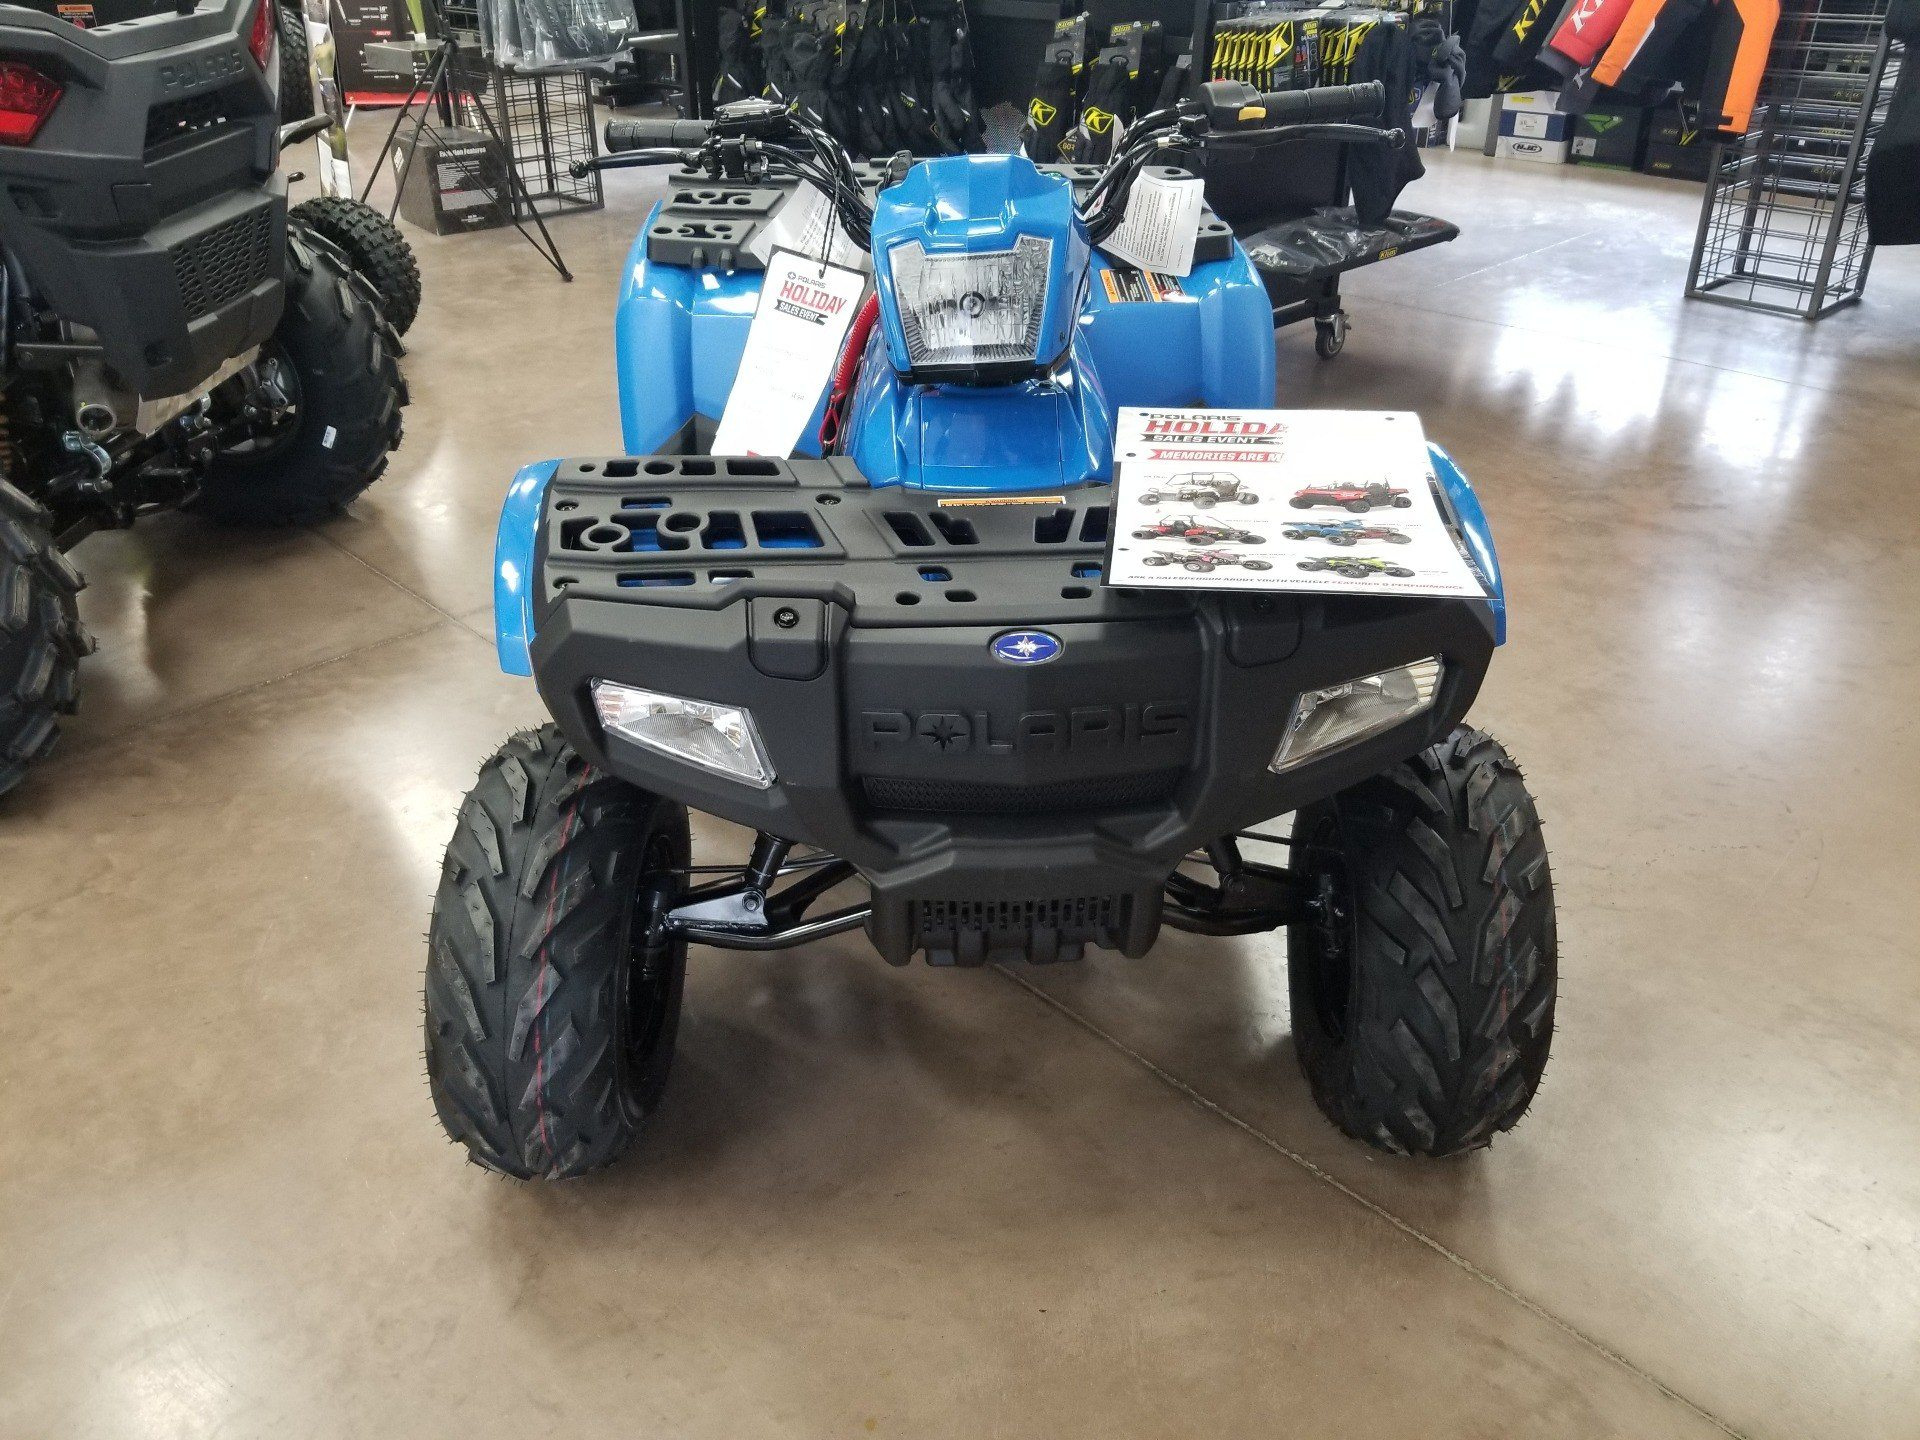 2019 Polaris Sportsman 110 EFI in Algona, Iowa